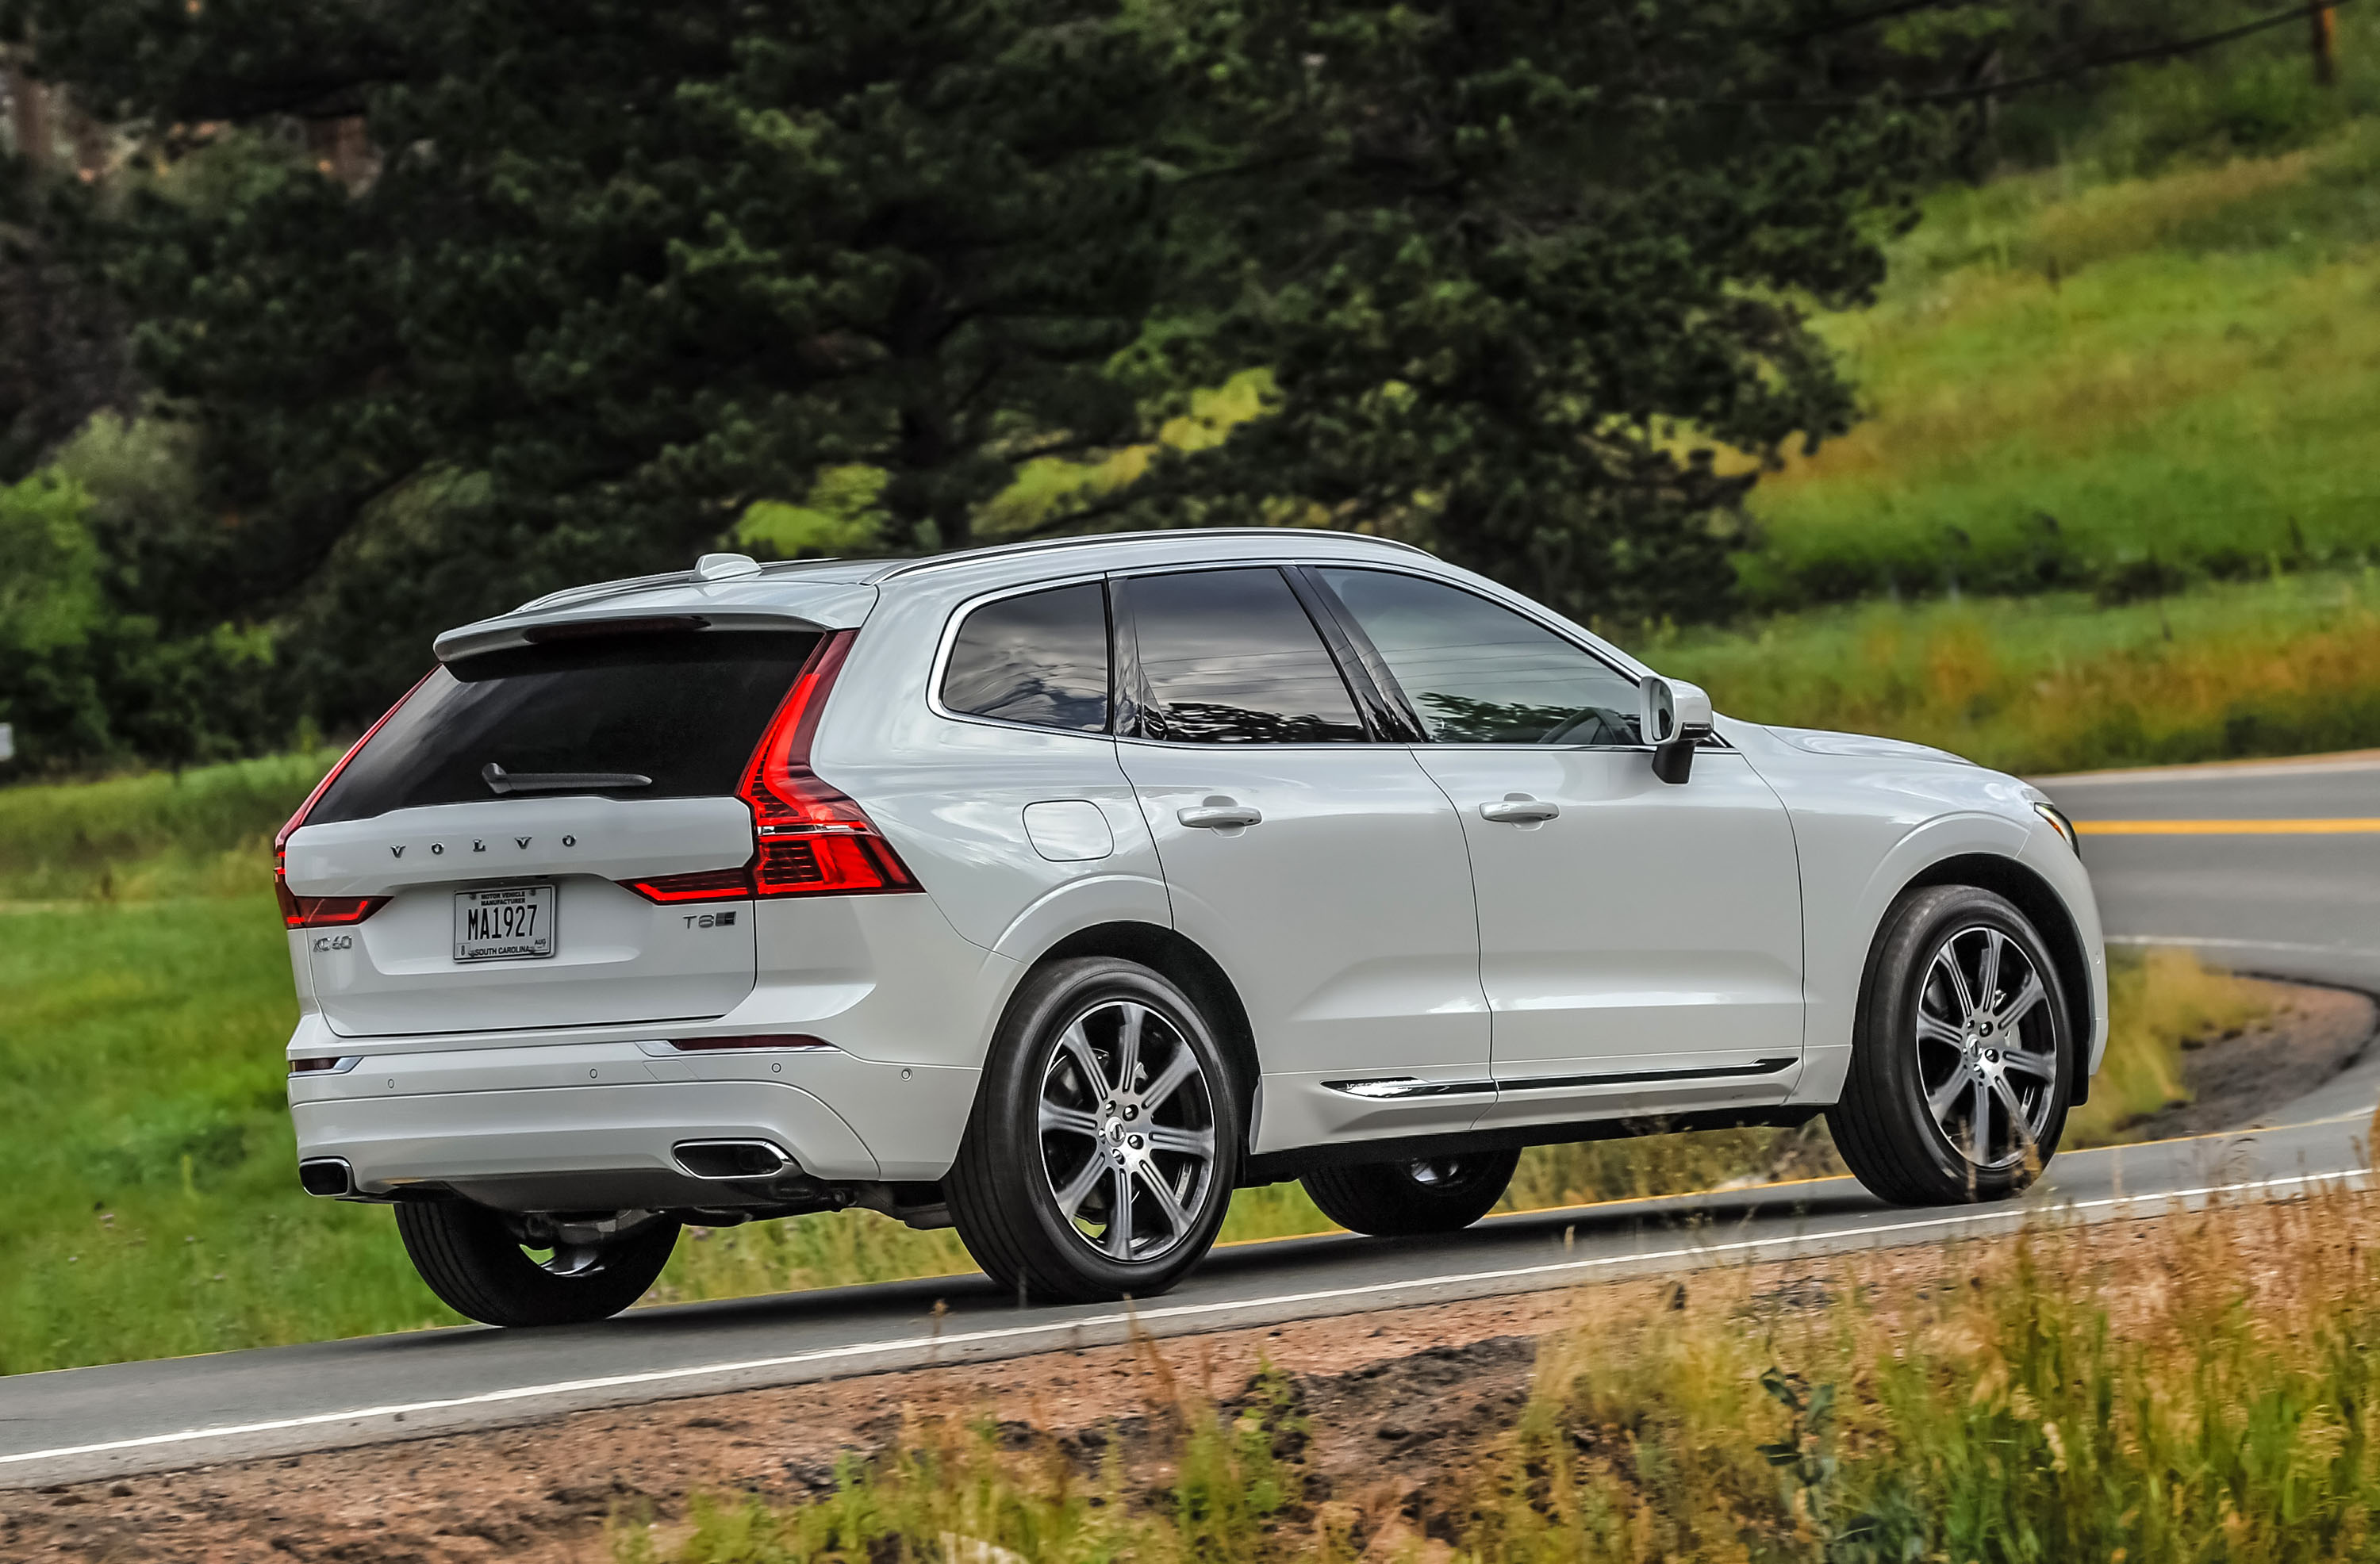 2018 Volvo Xc60 T8 First Drive Review The Accidental